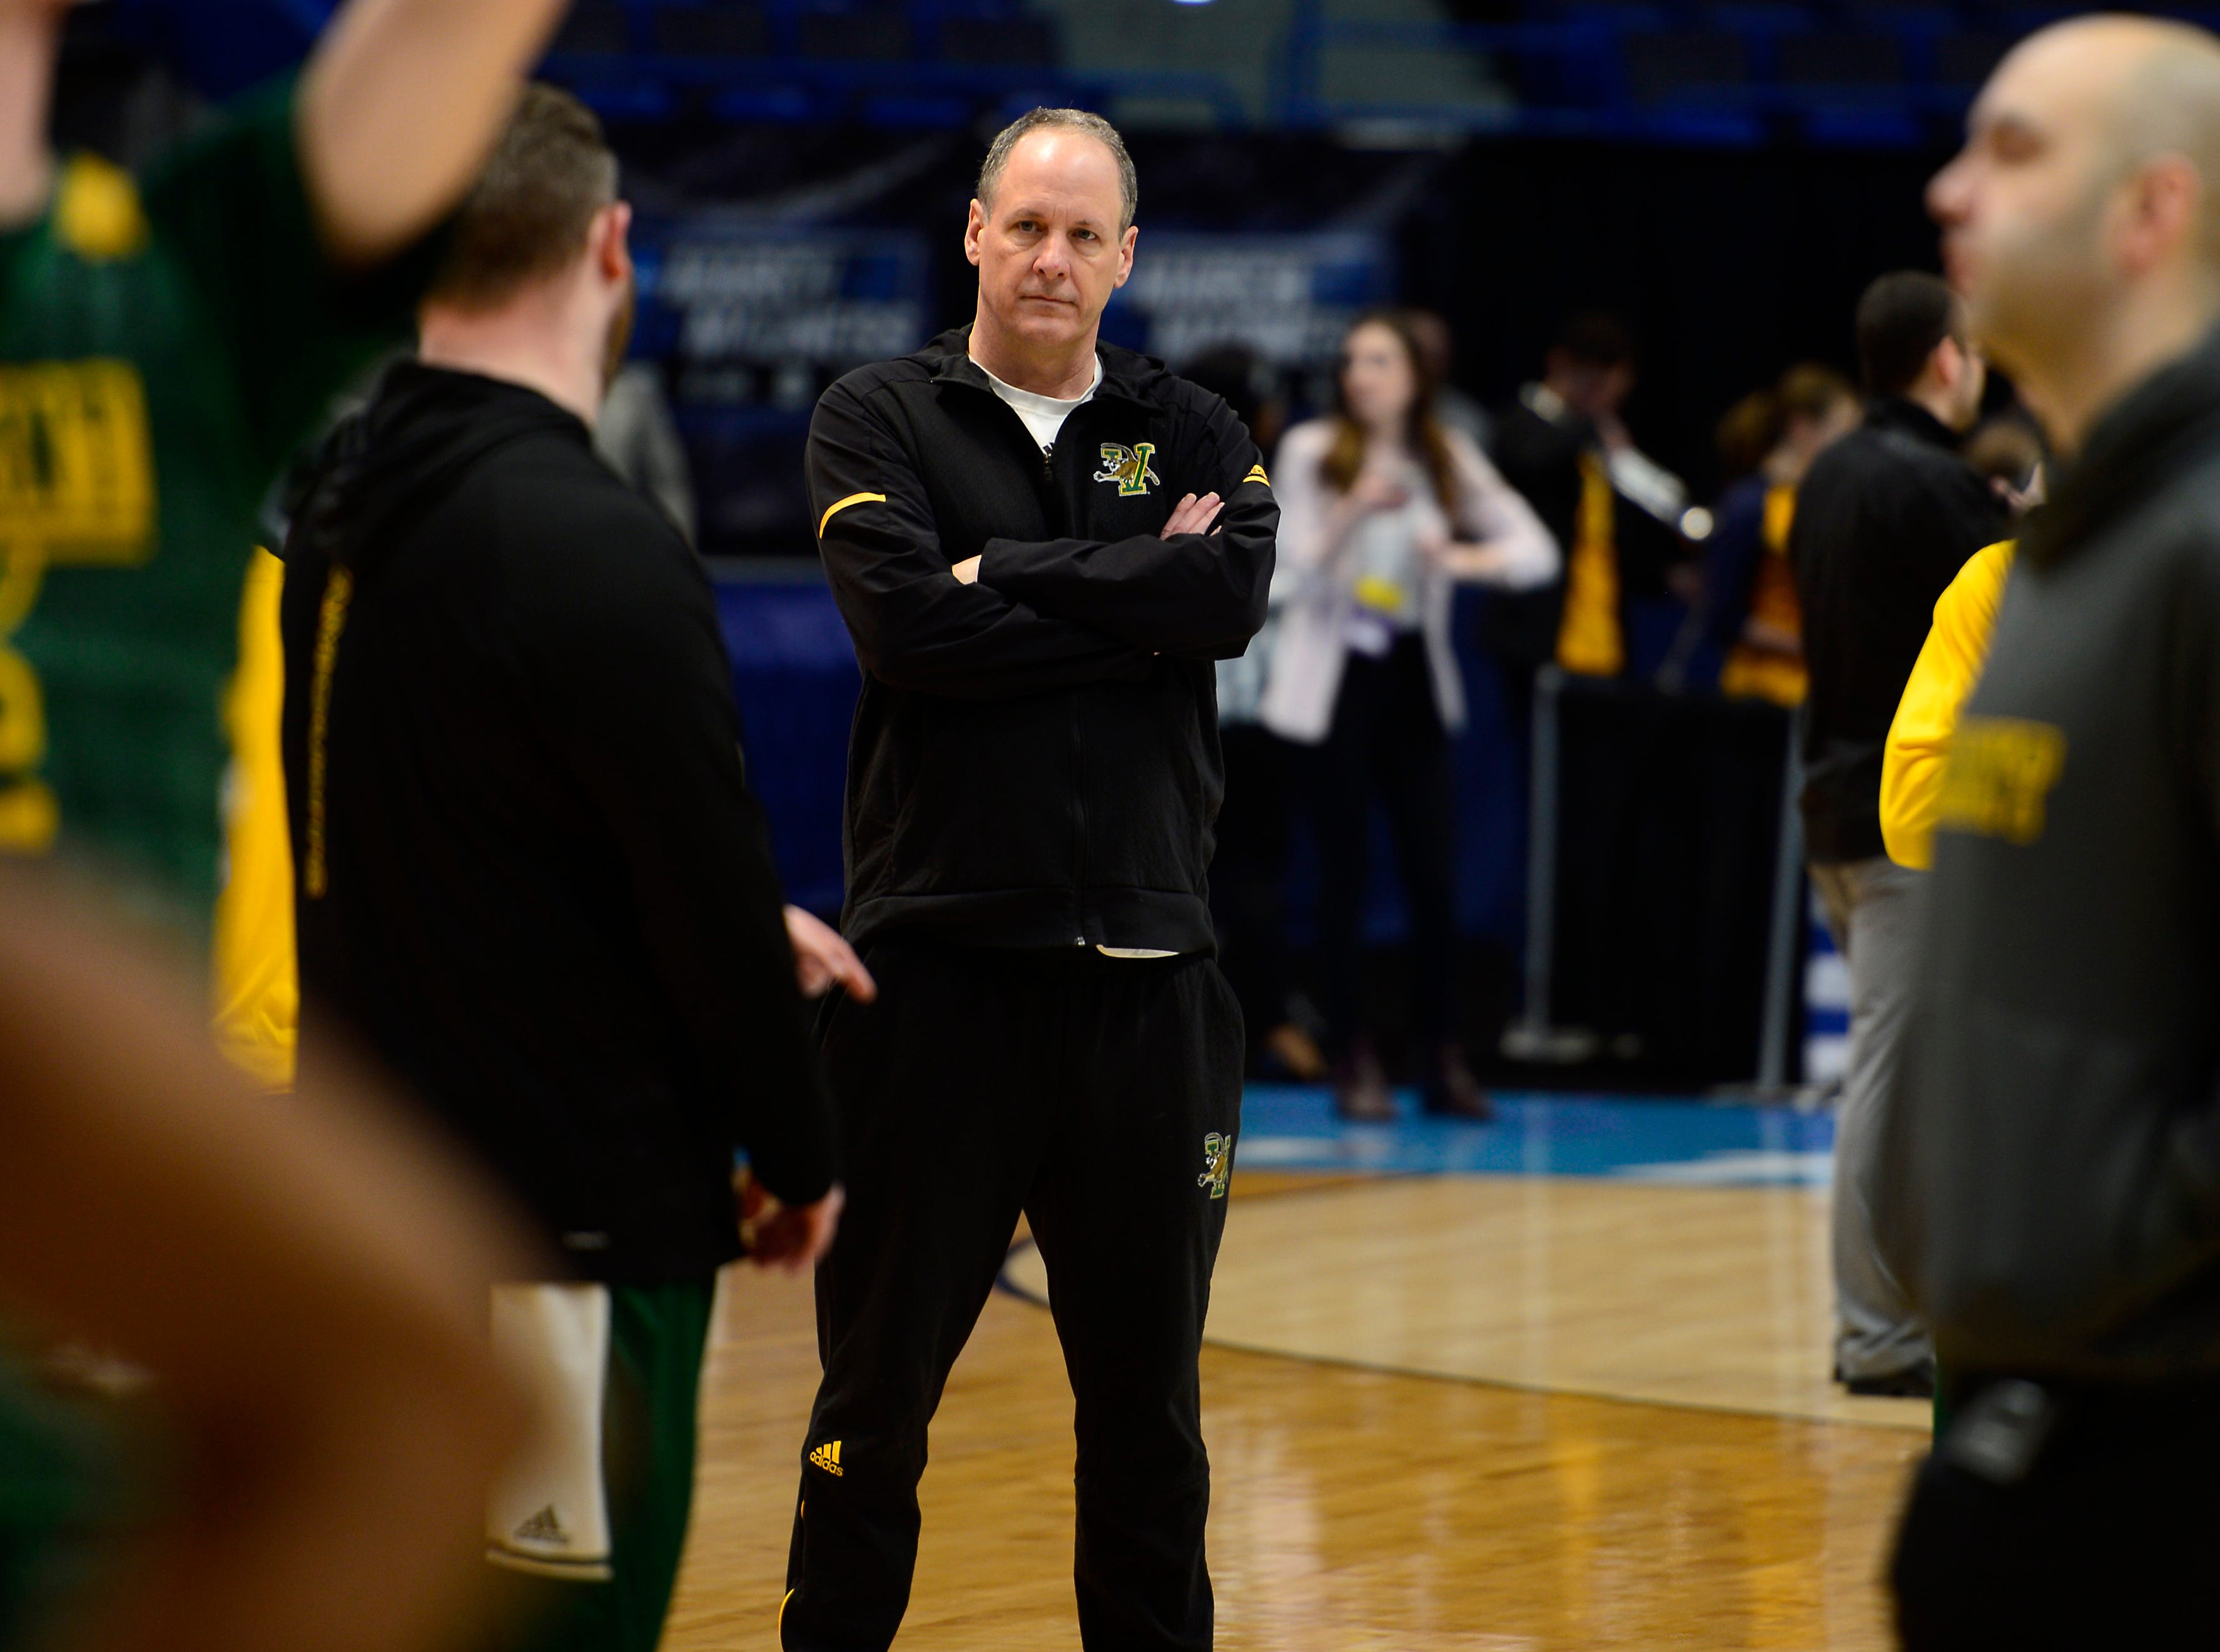 Vermont head coach John Becker watches his team practice Wednesday ahead of the Catamounts' NCAA tournament game at the XL Center in Hartford, Connecticut.